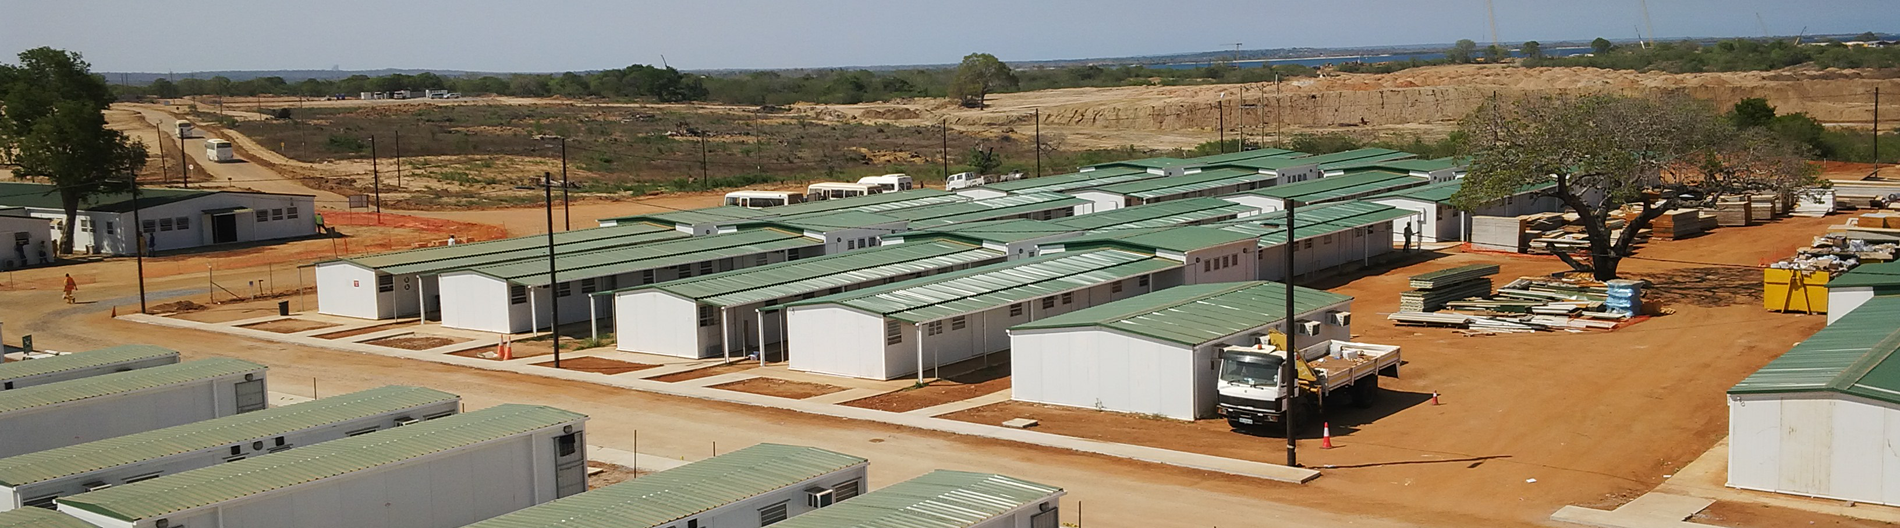 Our modular buildings are ideal for construction projects, your site office requirements or mobile ablutions in camps.